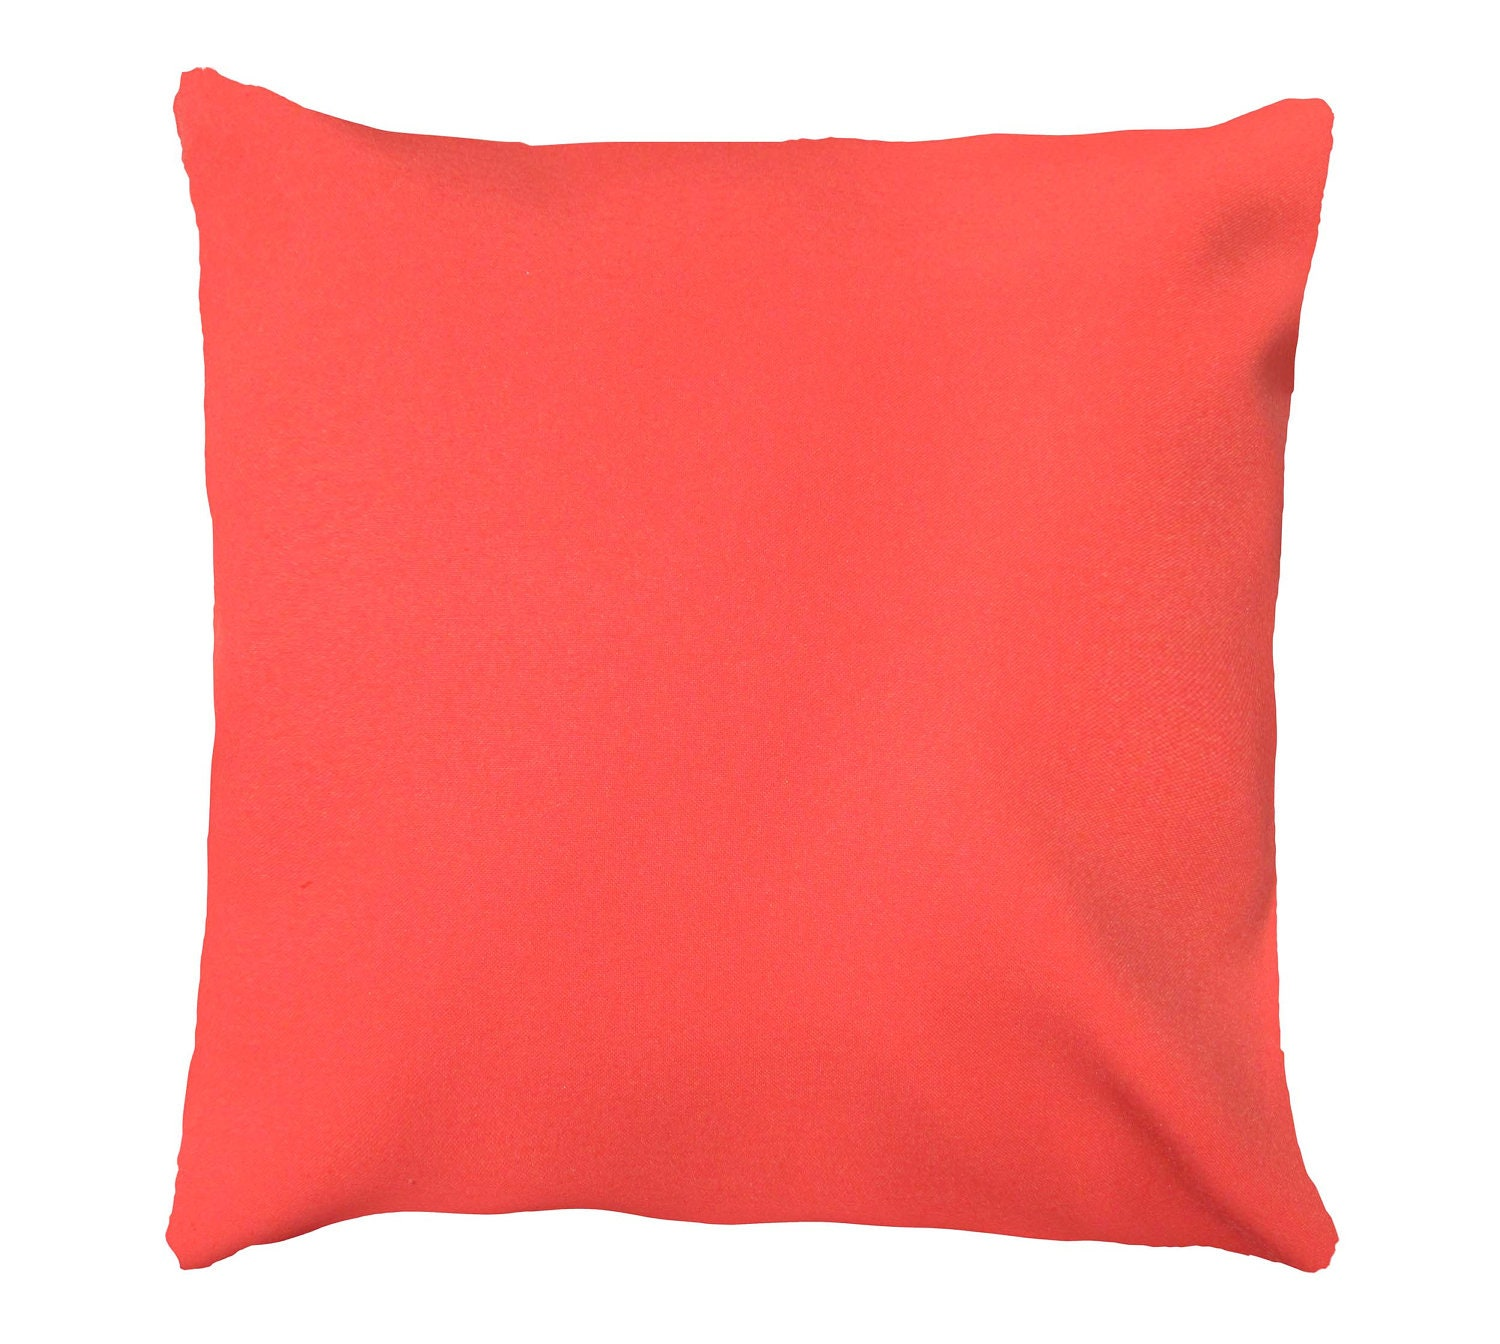 collections blue pillow navy and coral pillows sku throw pillowsanddecor